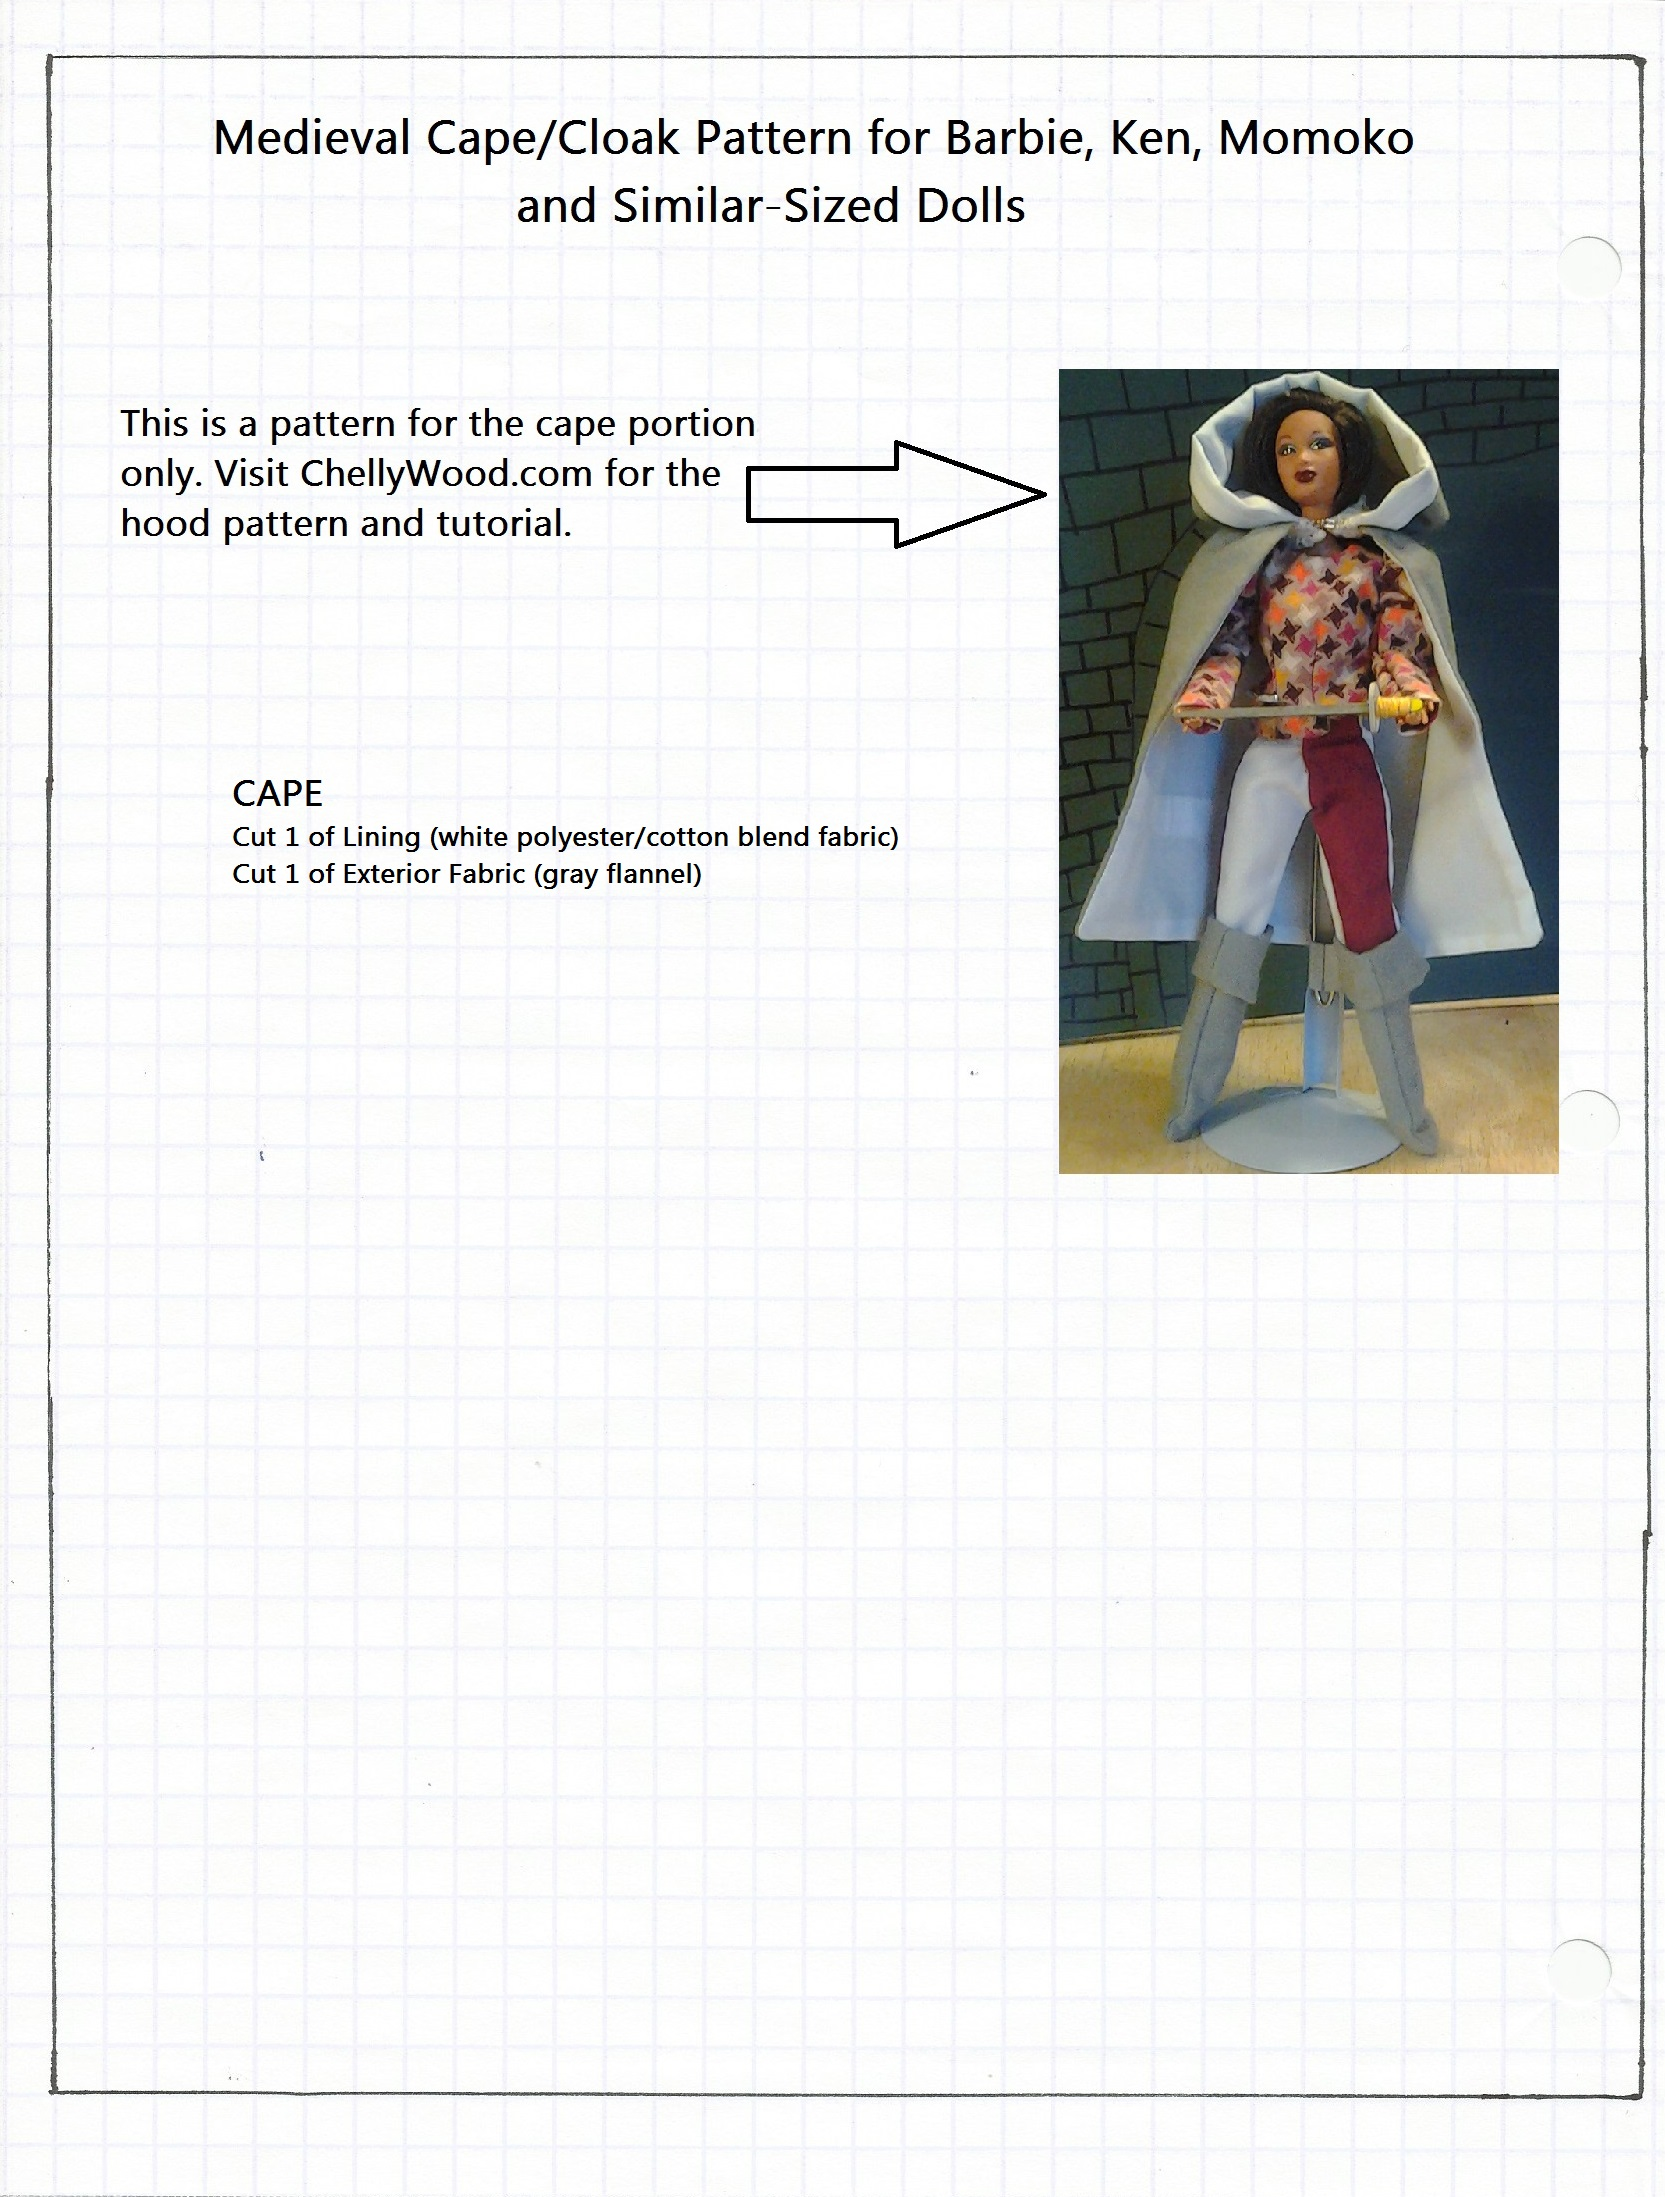 FREE Printable Barbie Doll Clothes Patterns | Chelly Wood